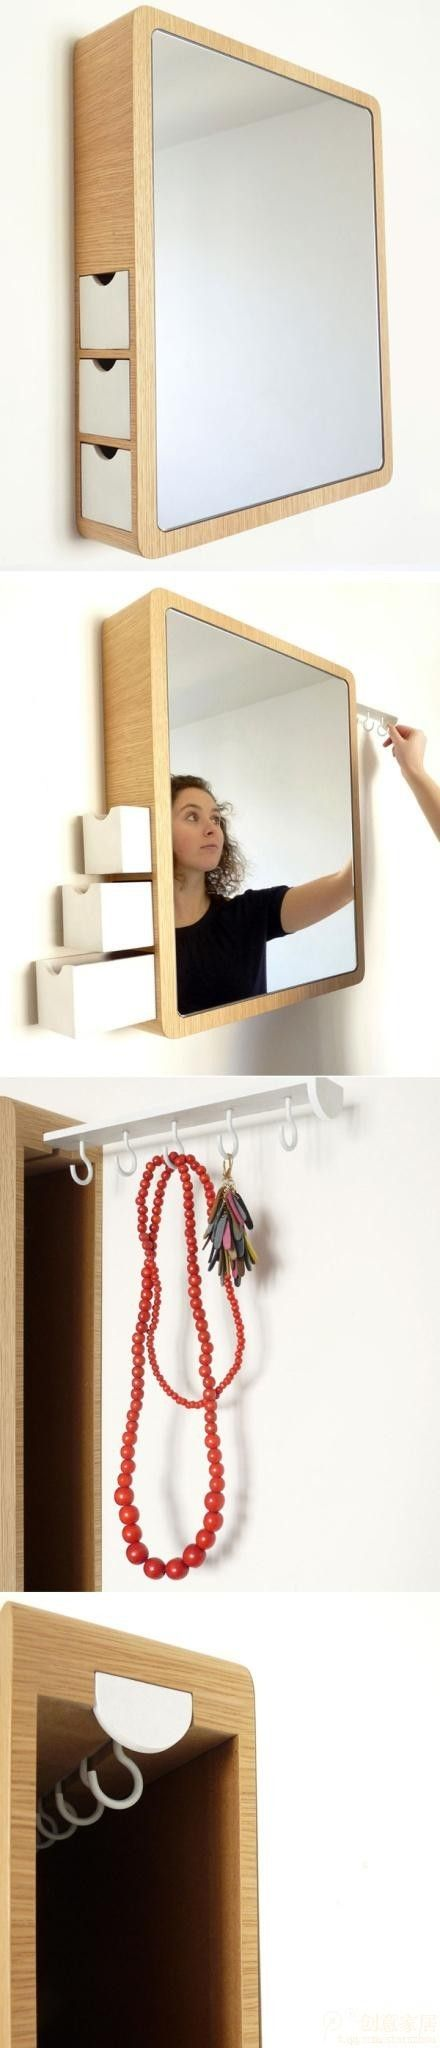 243 best diy vanity area images on pinterest - Bathroom mirror with hidden storage ...